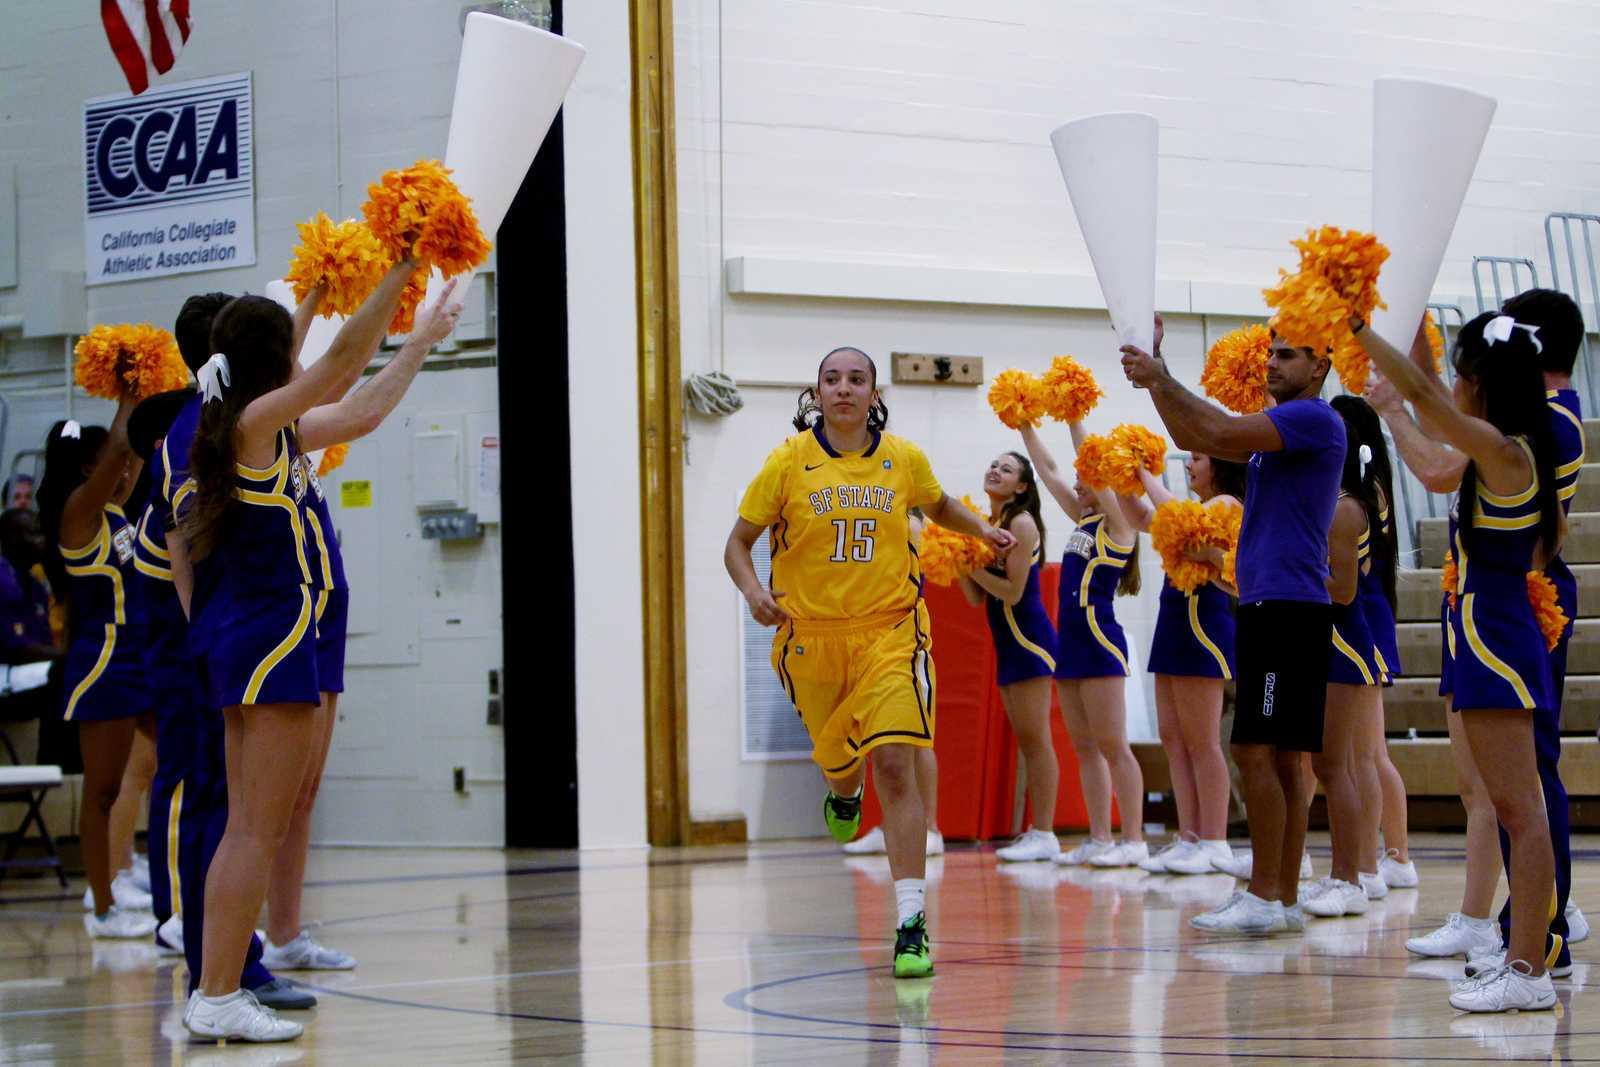 Kristian Juarez(15) runs between SF State's Cheer Team after being introduced at Gator Madness in SF State's Main Gymnasium, on Friday, Oct. 18. Gator Madness gave students the chance to meet athletes from the wrestling team, and the men's and women's basketball teams. Photo by Gavin McIntyre / Xpress